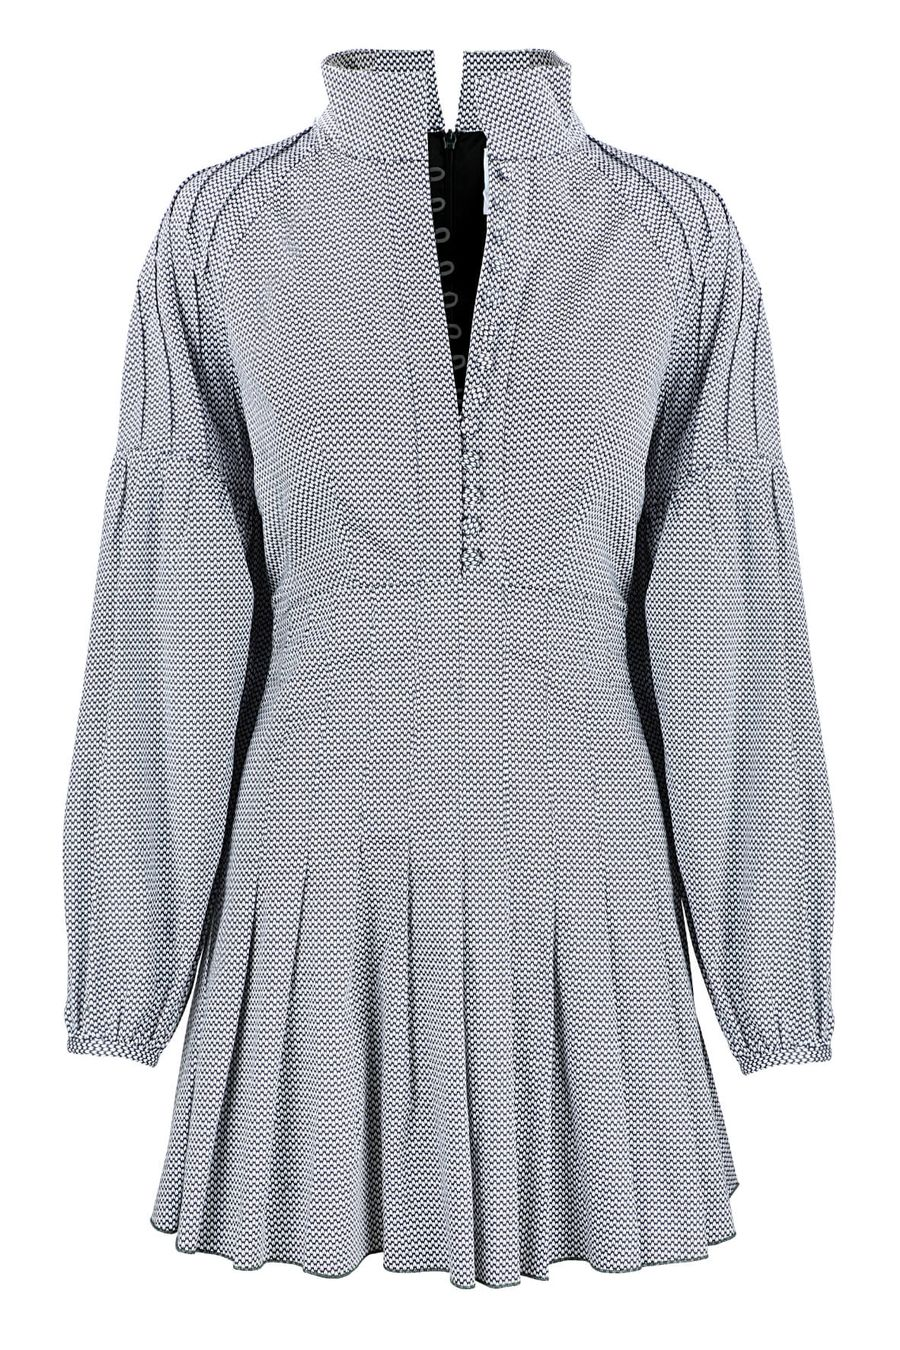 cameo-another-lover-long-sleeve-dress-1